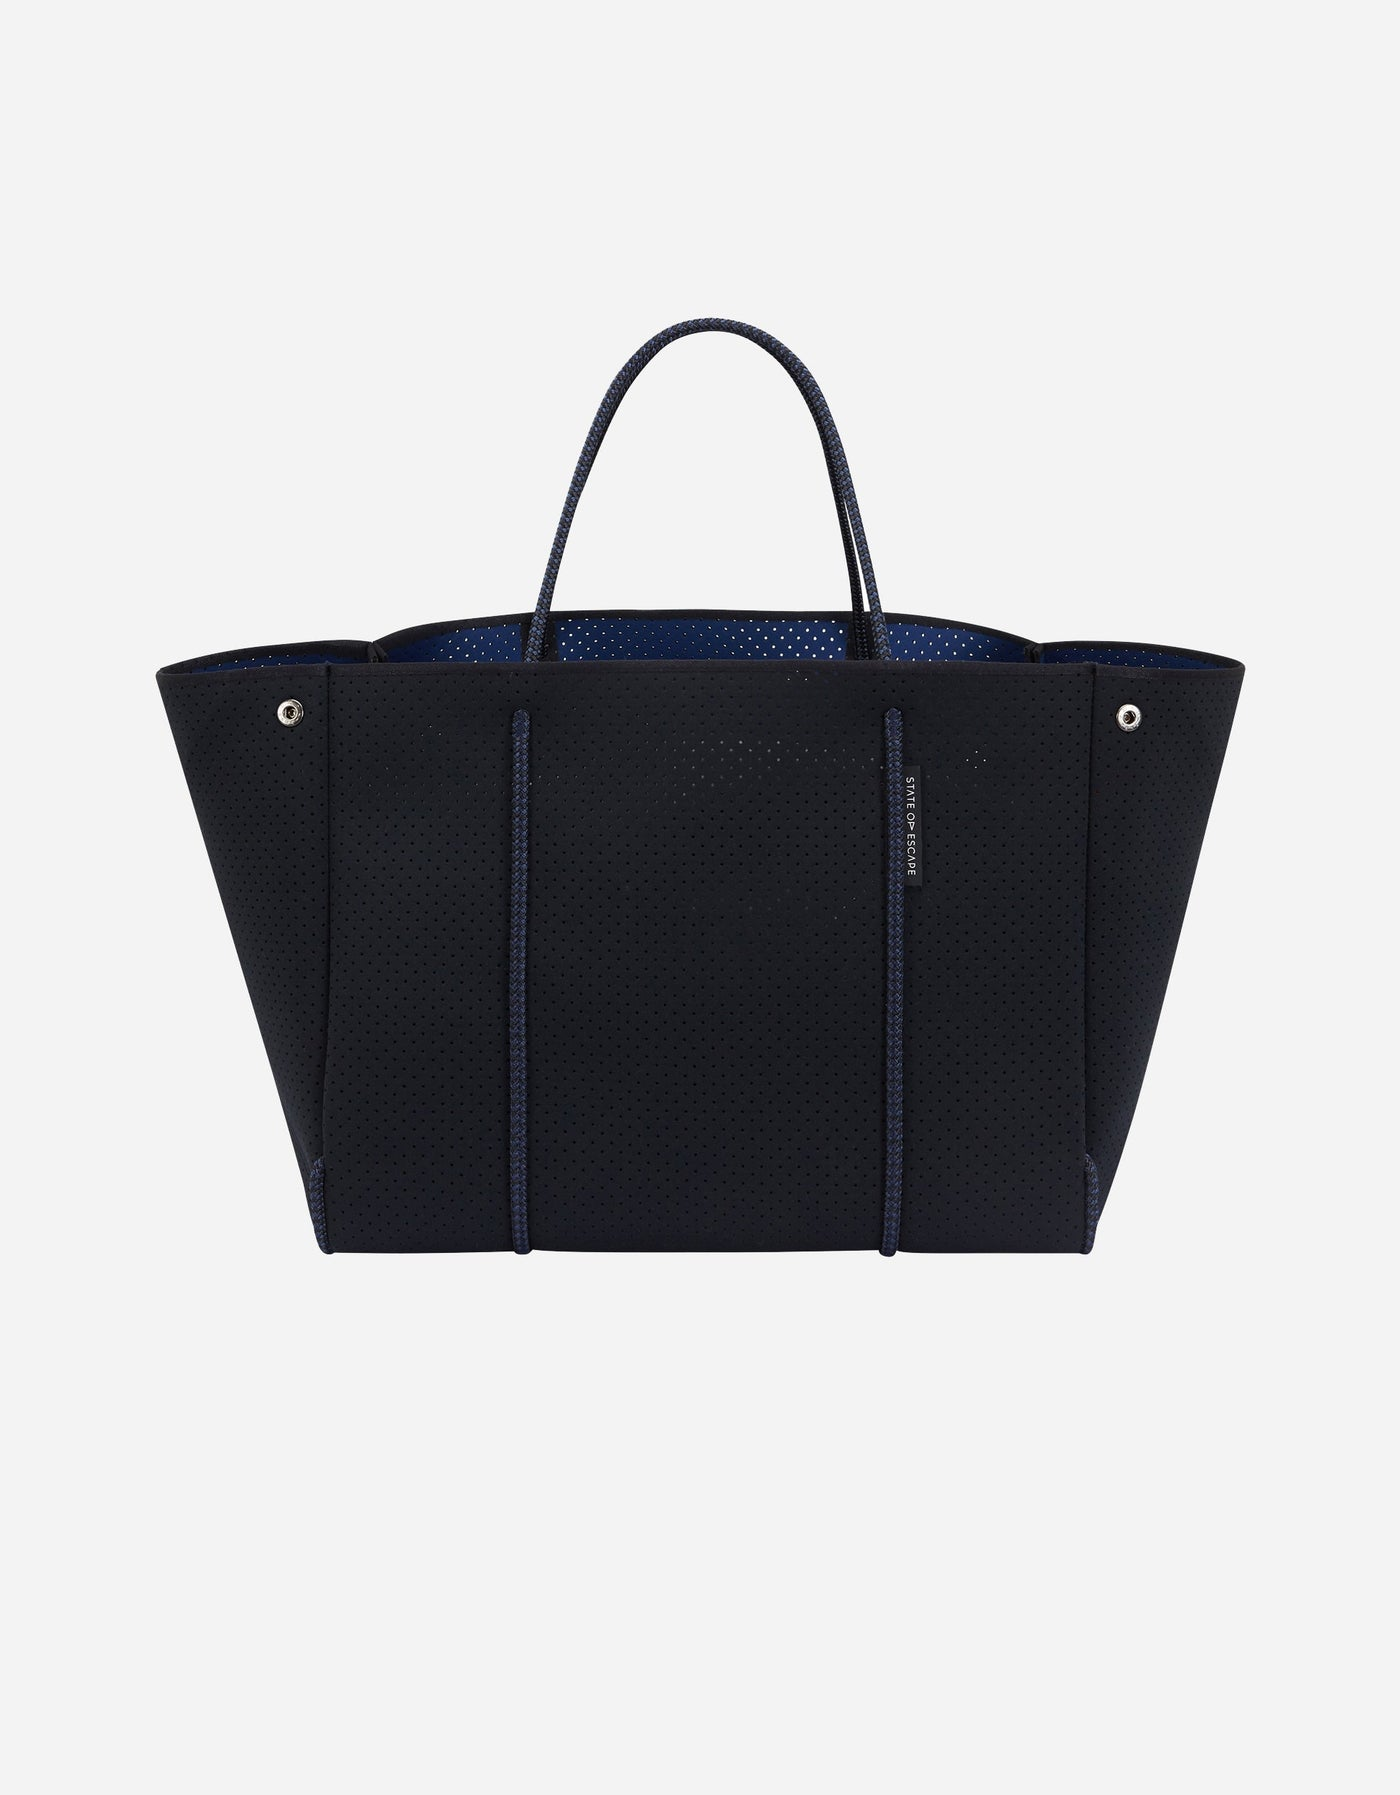 Escape tote in black / navy (dual tone)